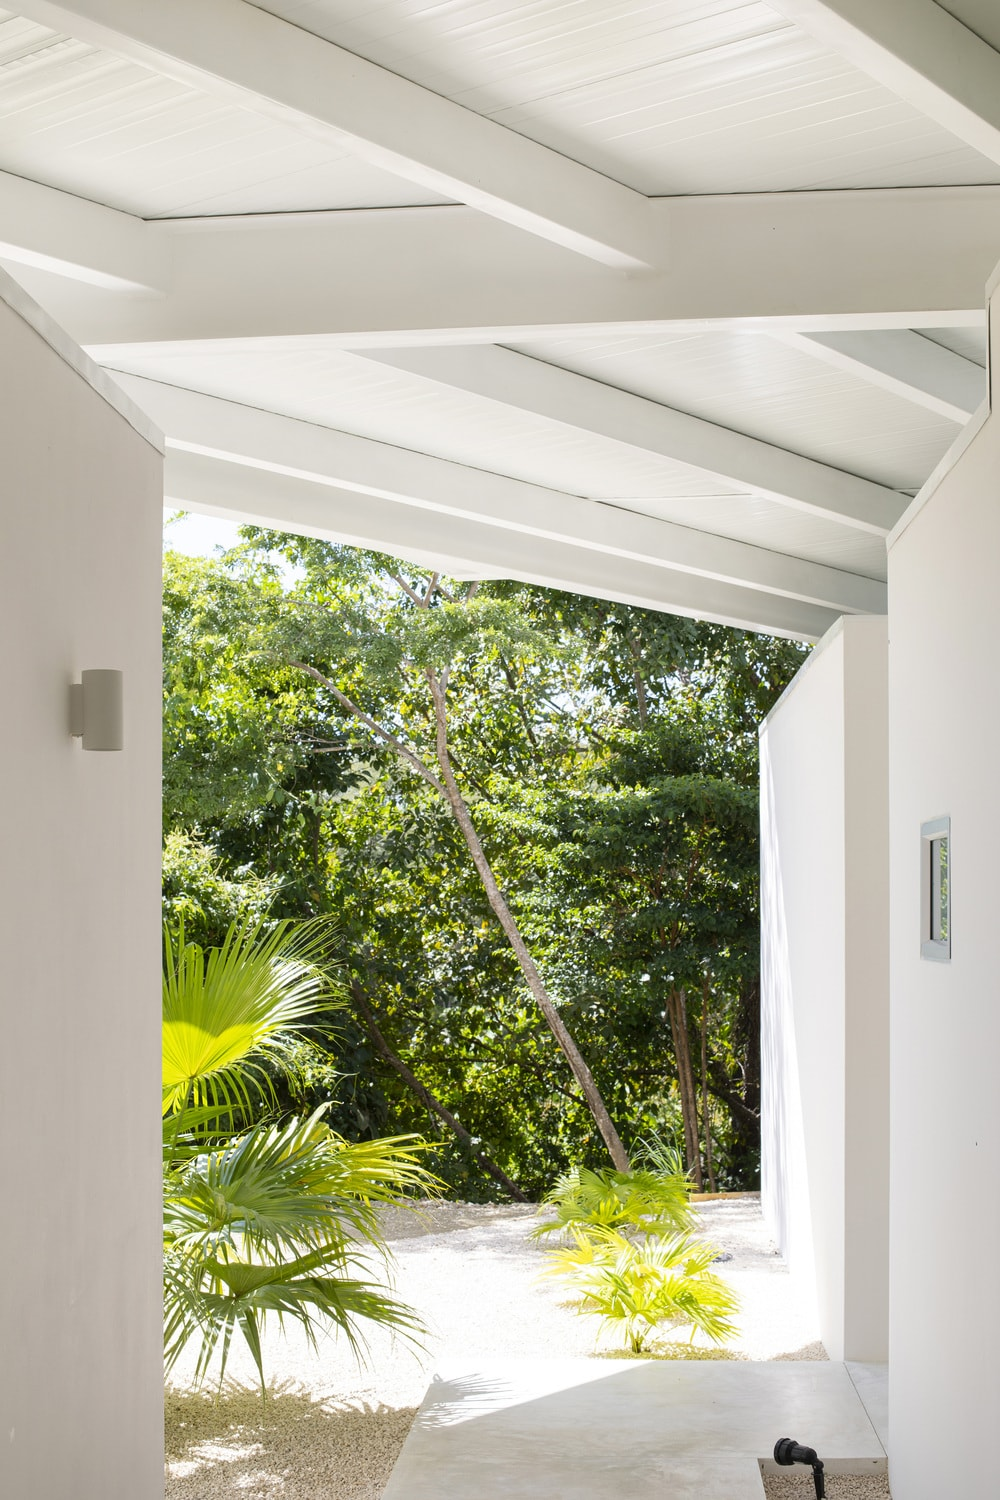 This is a covered walkway within the property with a clear view of the surrounding landscape.